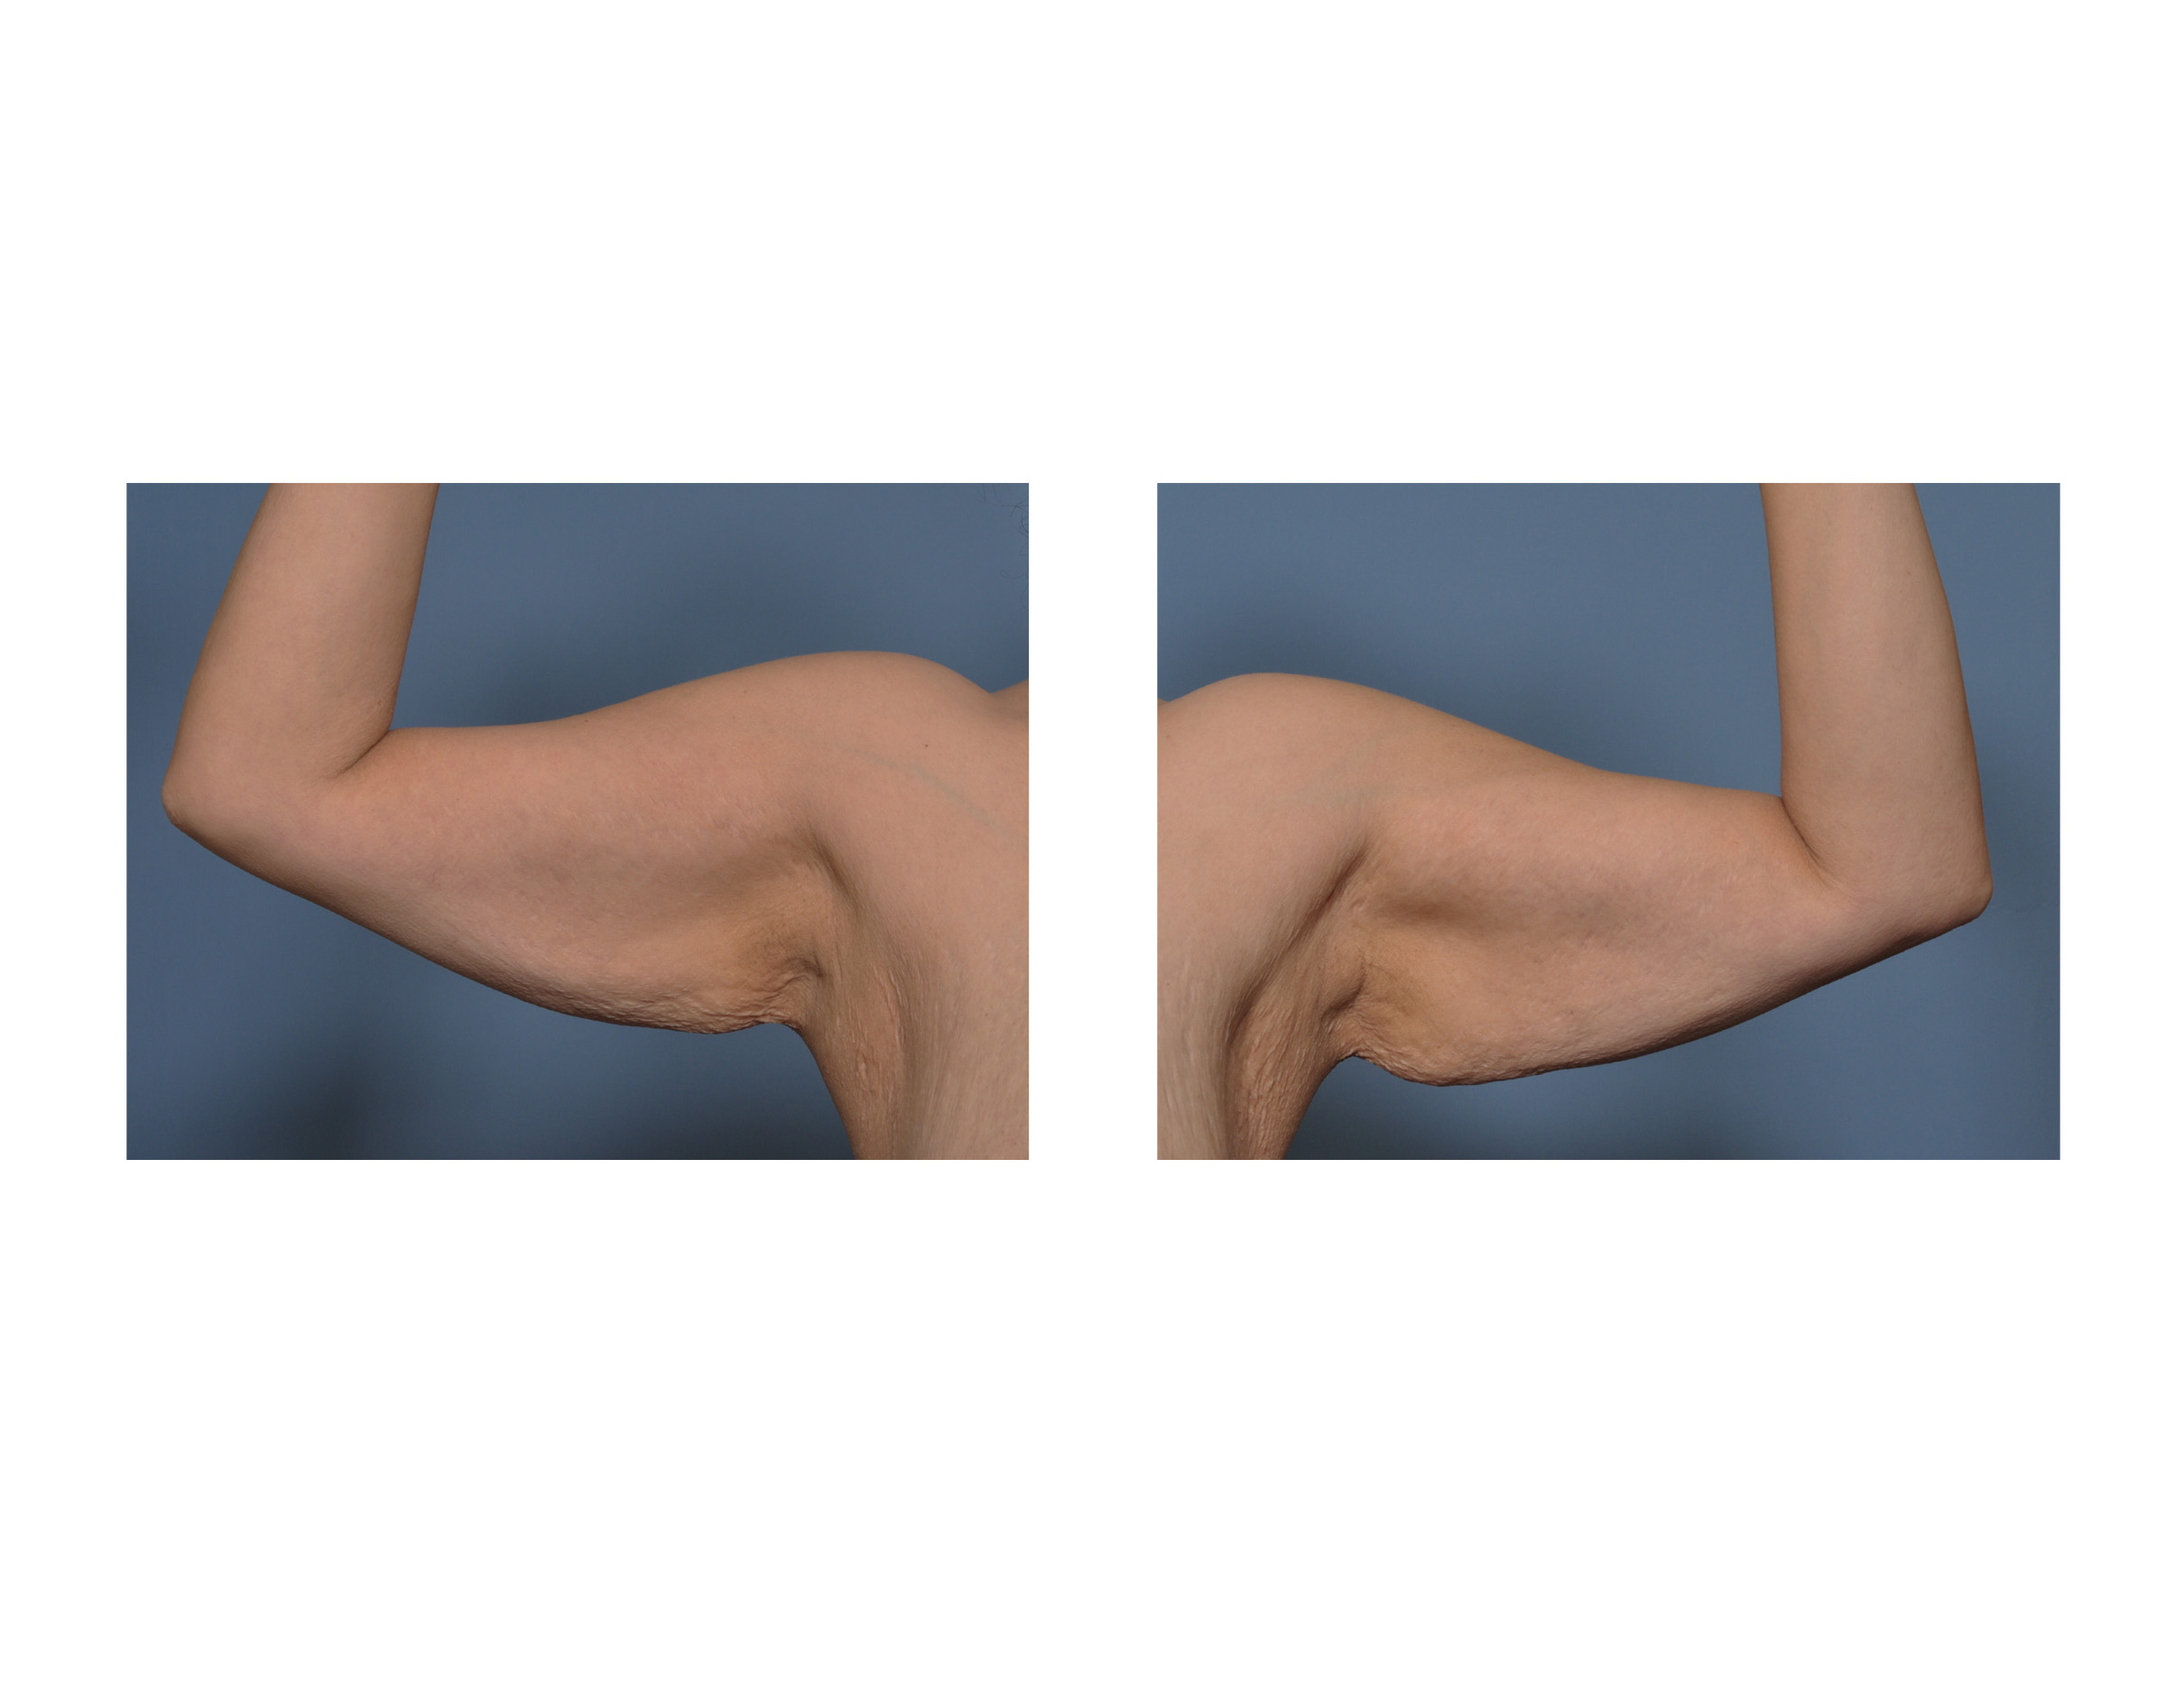 Saggy Arms After Bariatric Surgery Dr Barry Eppley Indianapolis